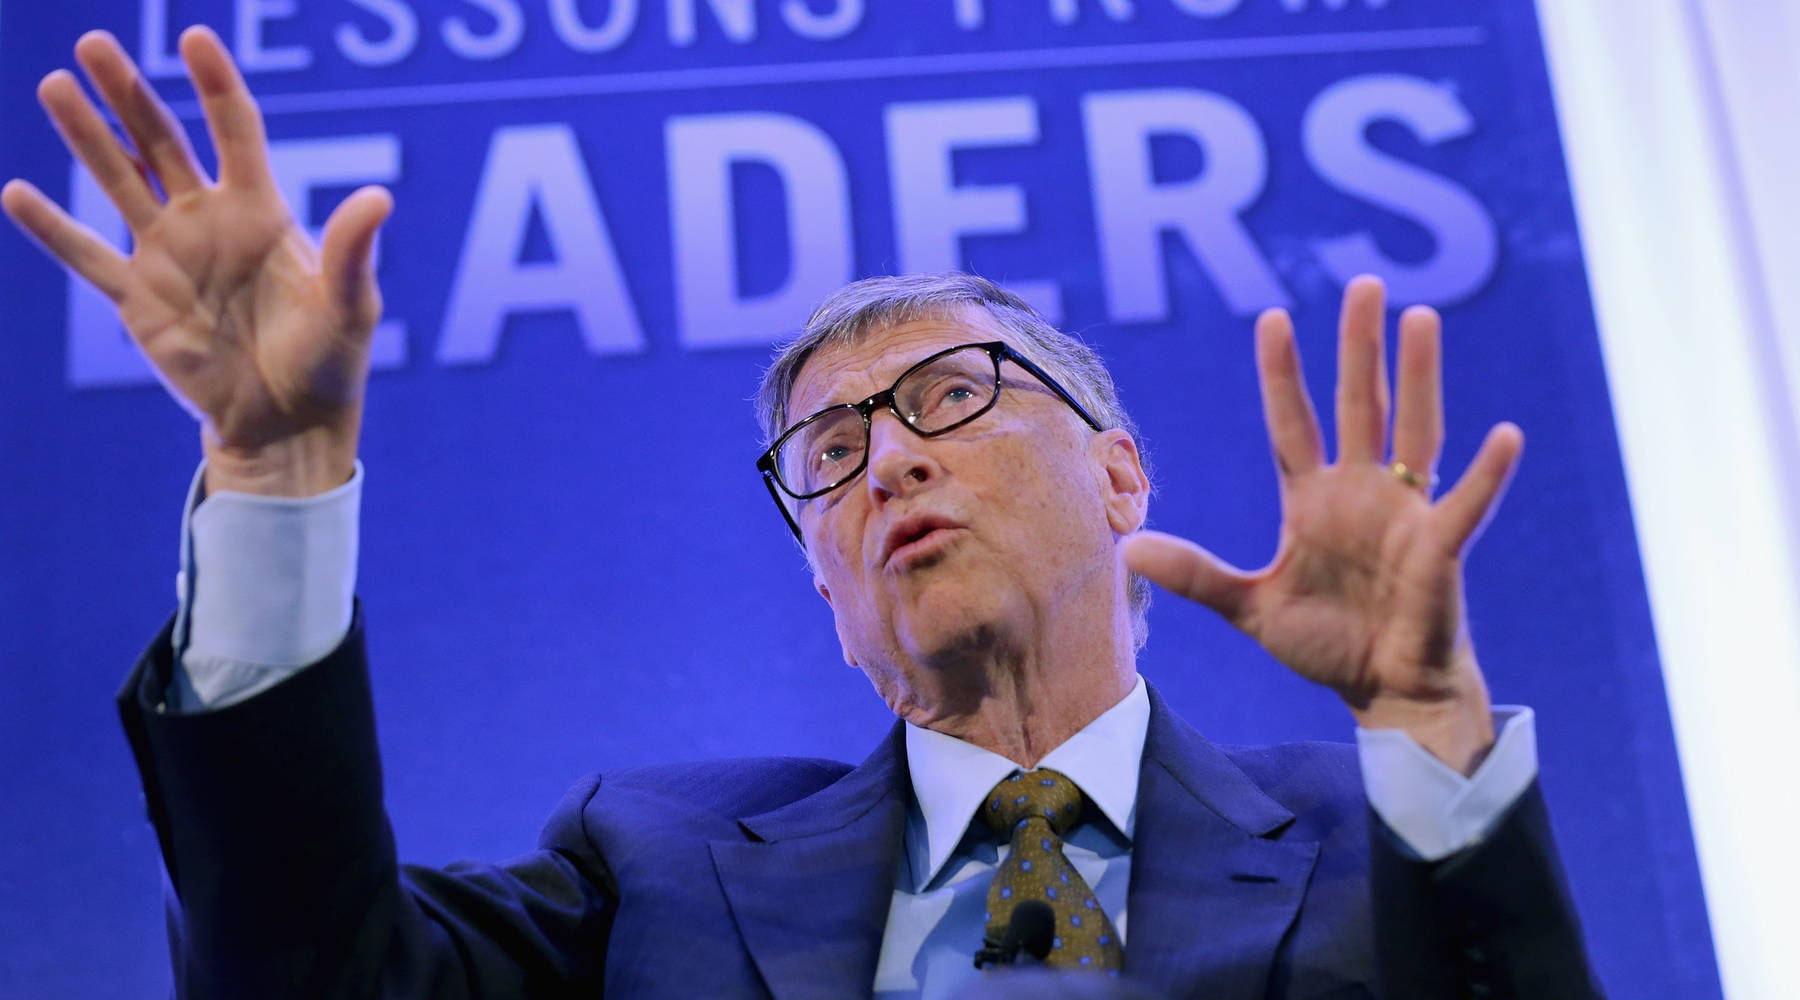 Bill Gates warns of vaccine worries for developing nations